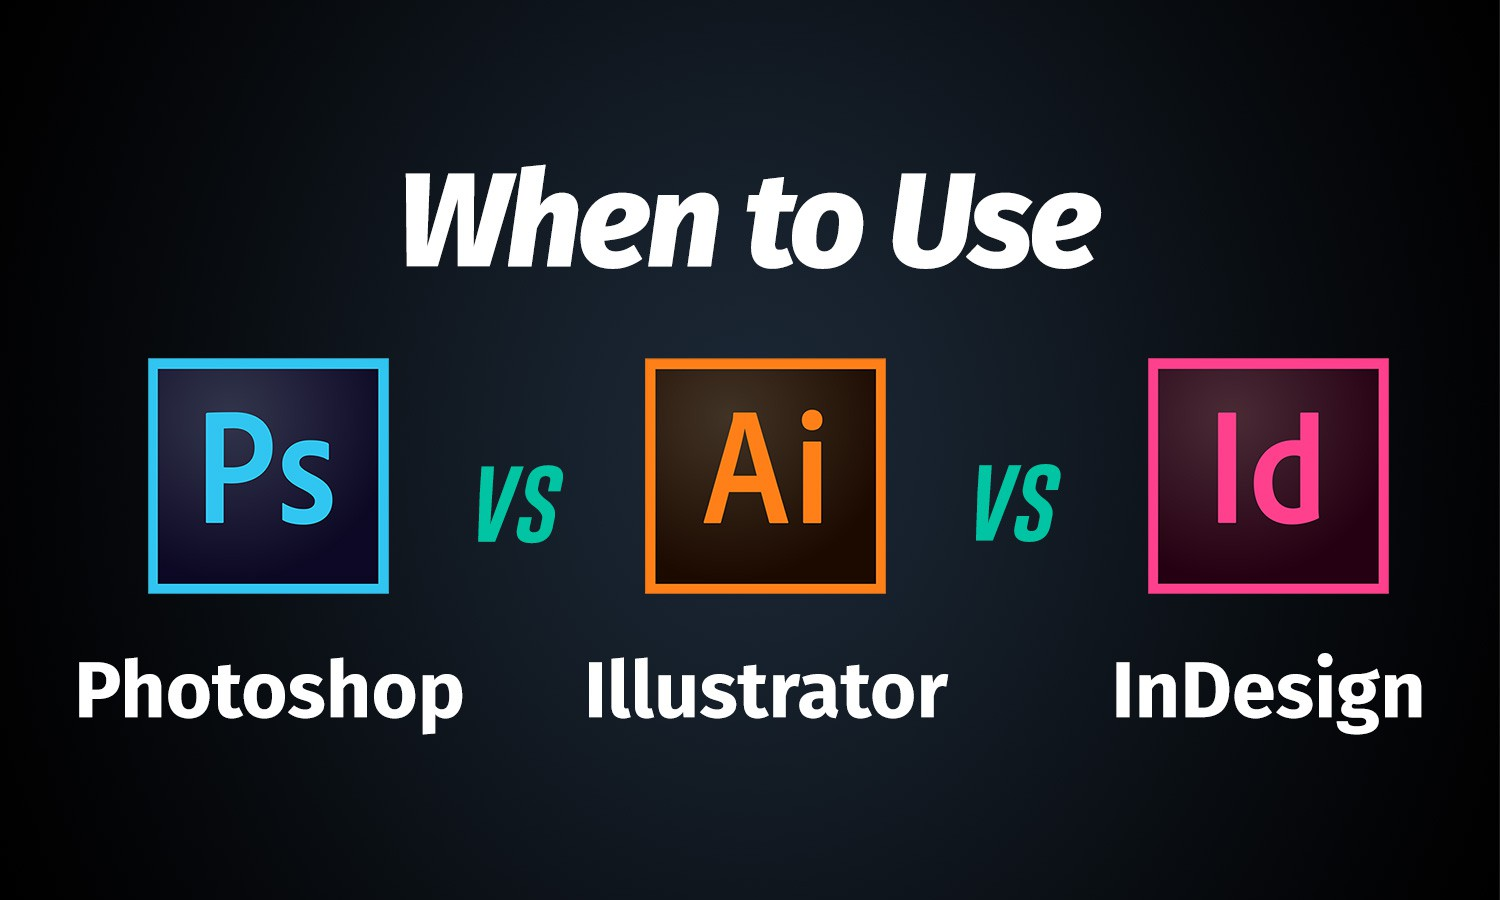 perbedaan_antara_adobe_illustrator_indesign_dan_photoshop.jpg